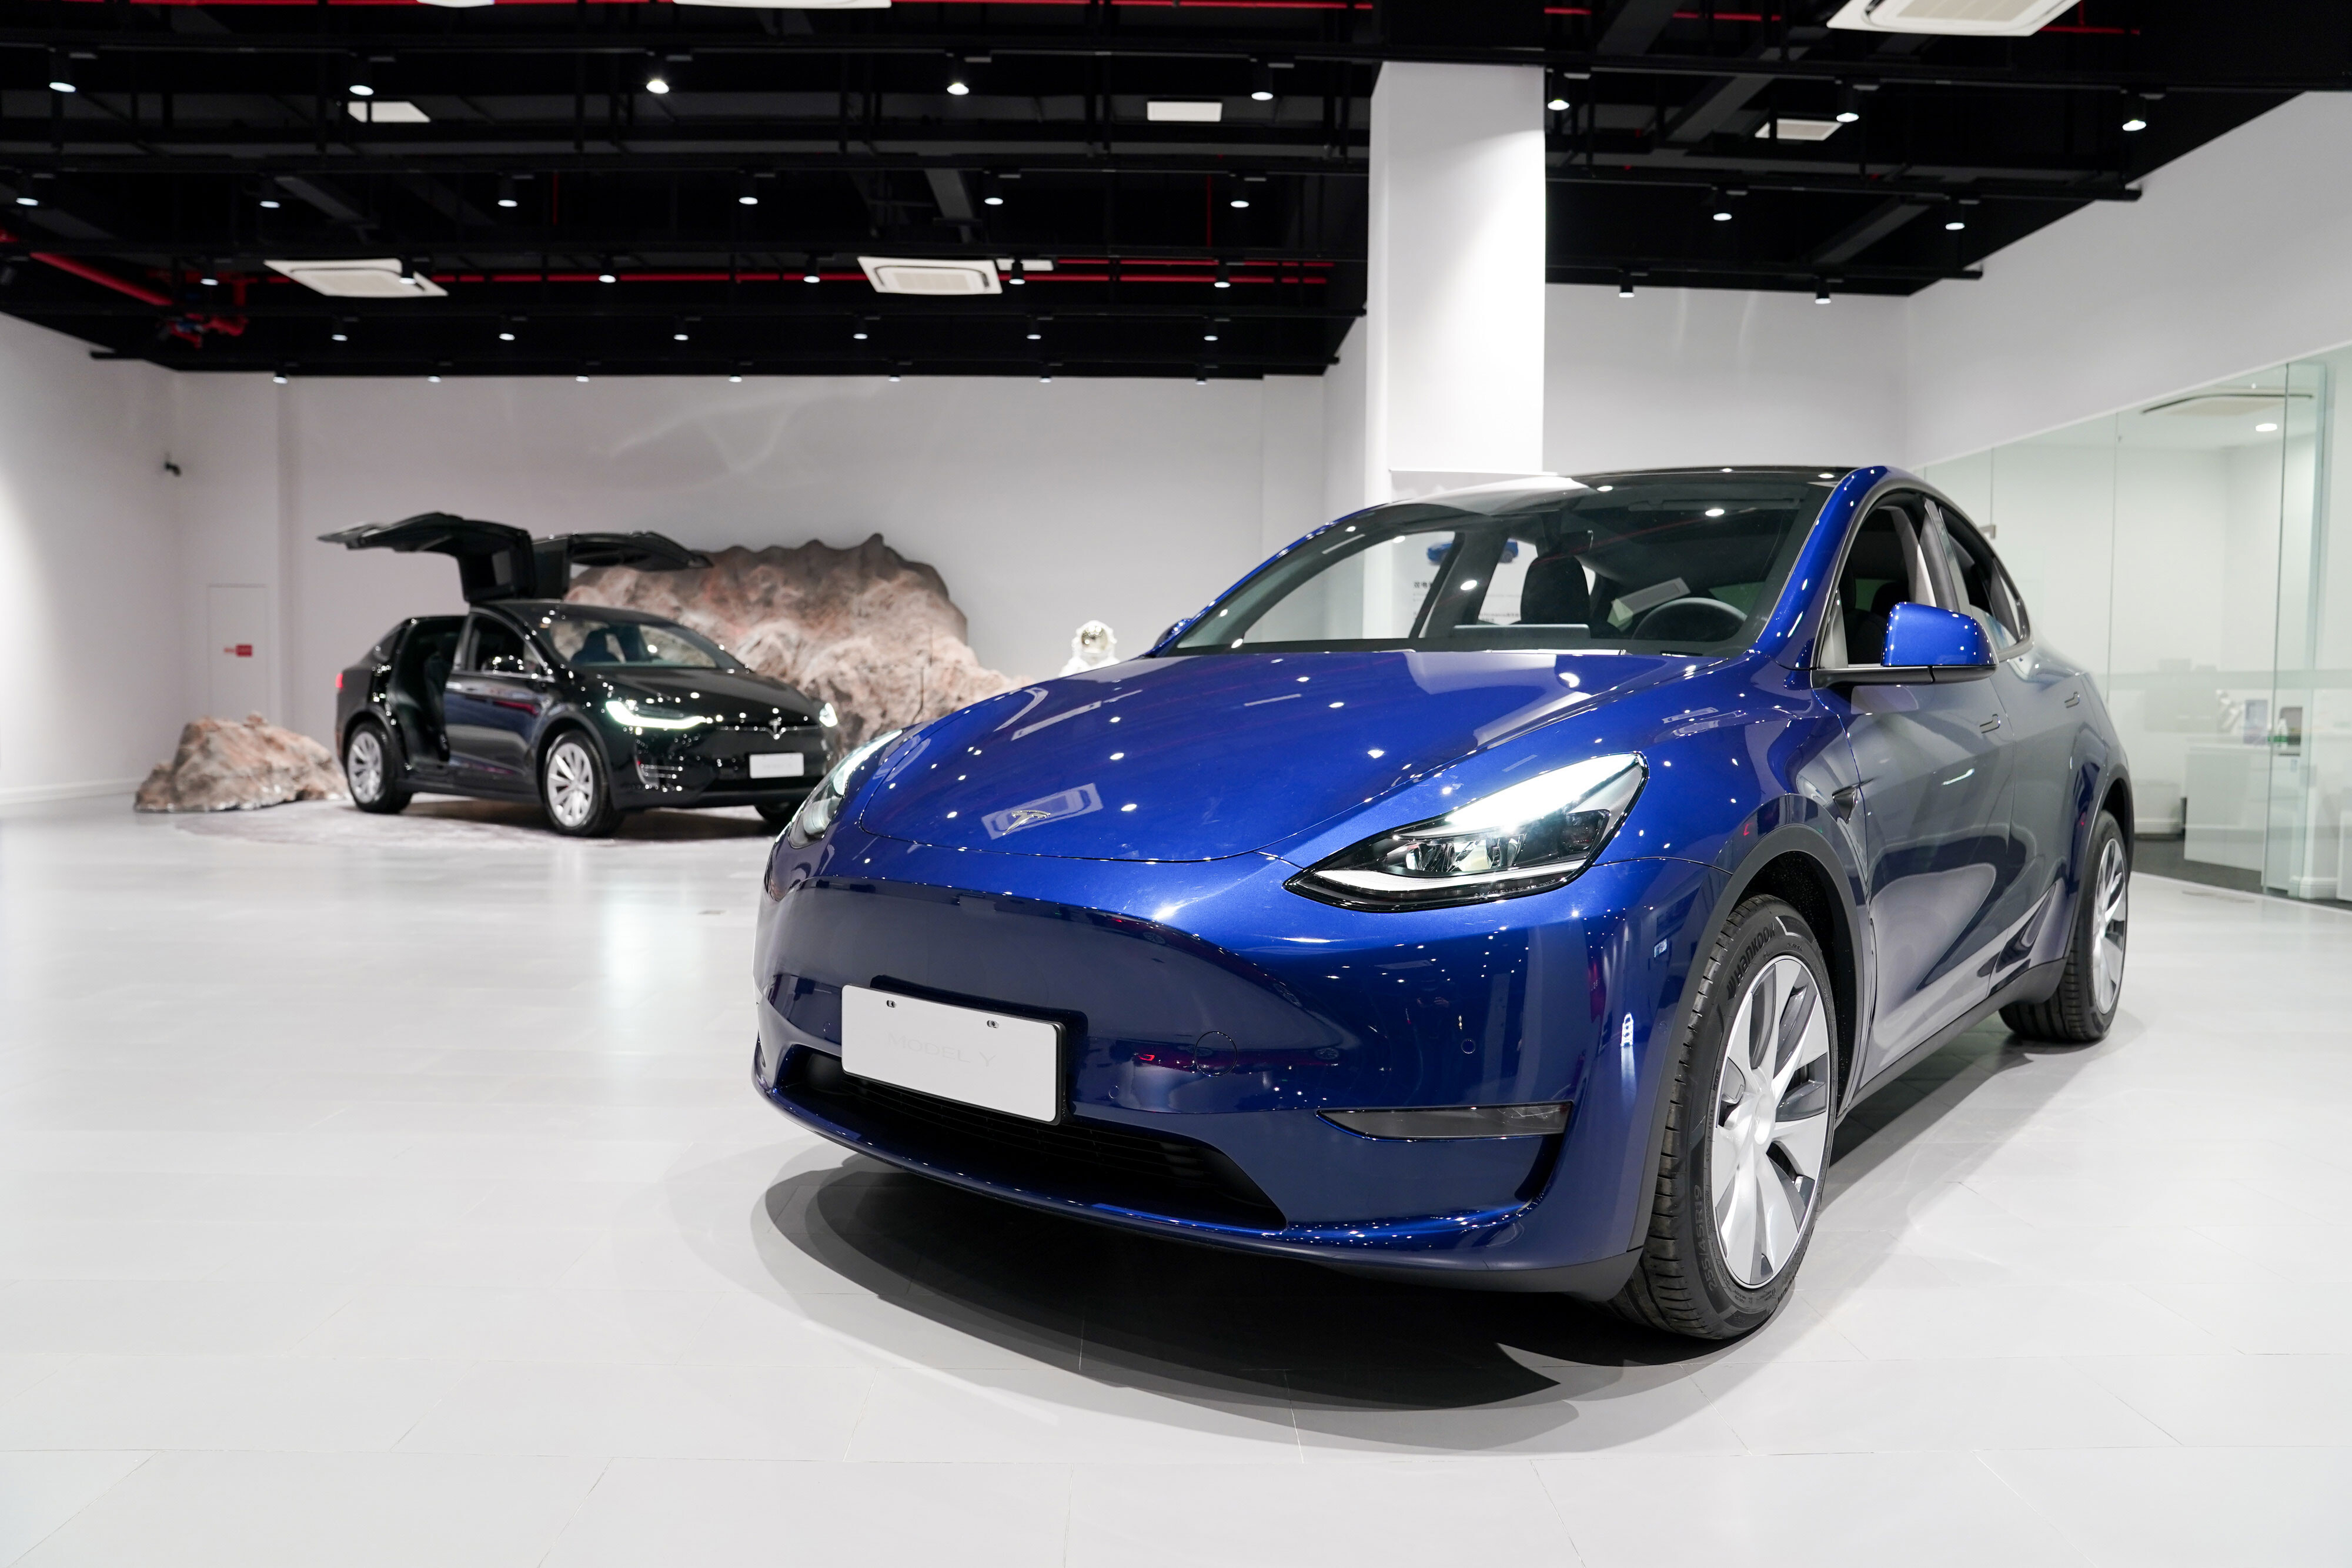 Here are 8 things investors will be looking for in Tesla's earnings report